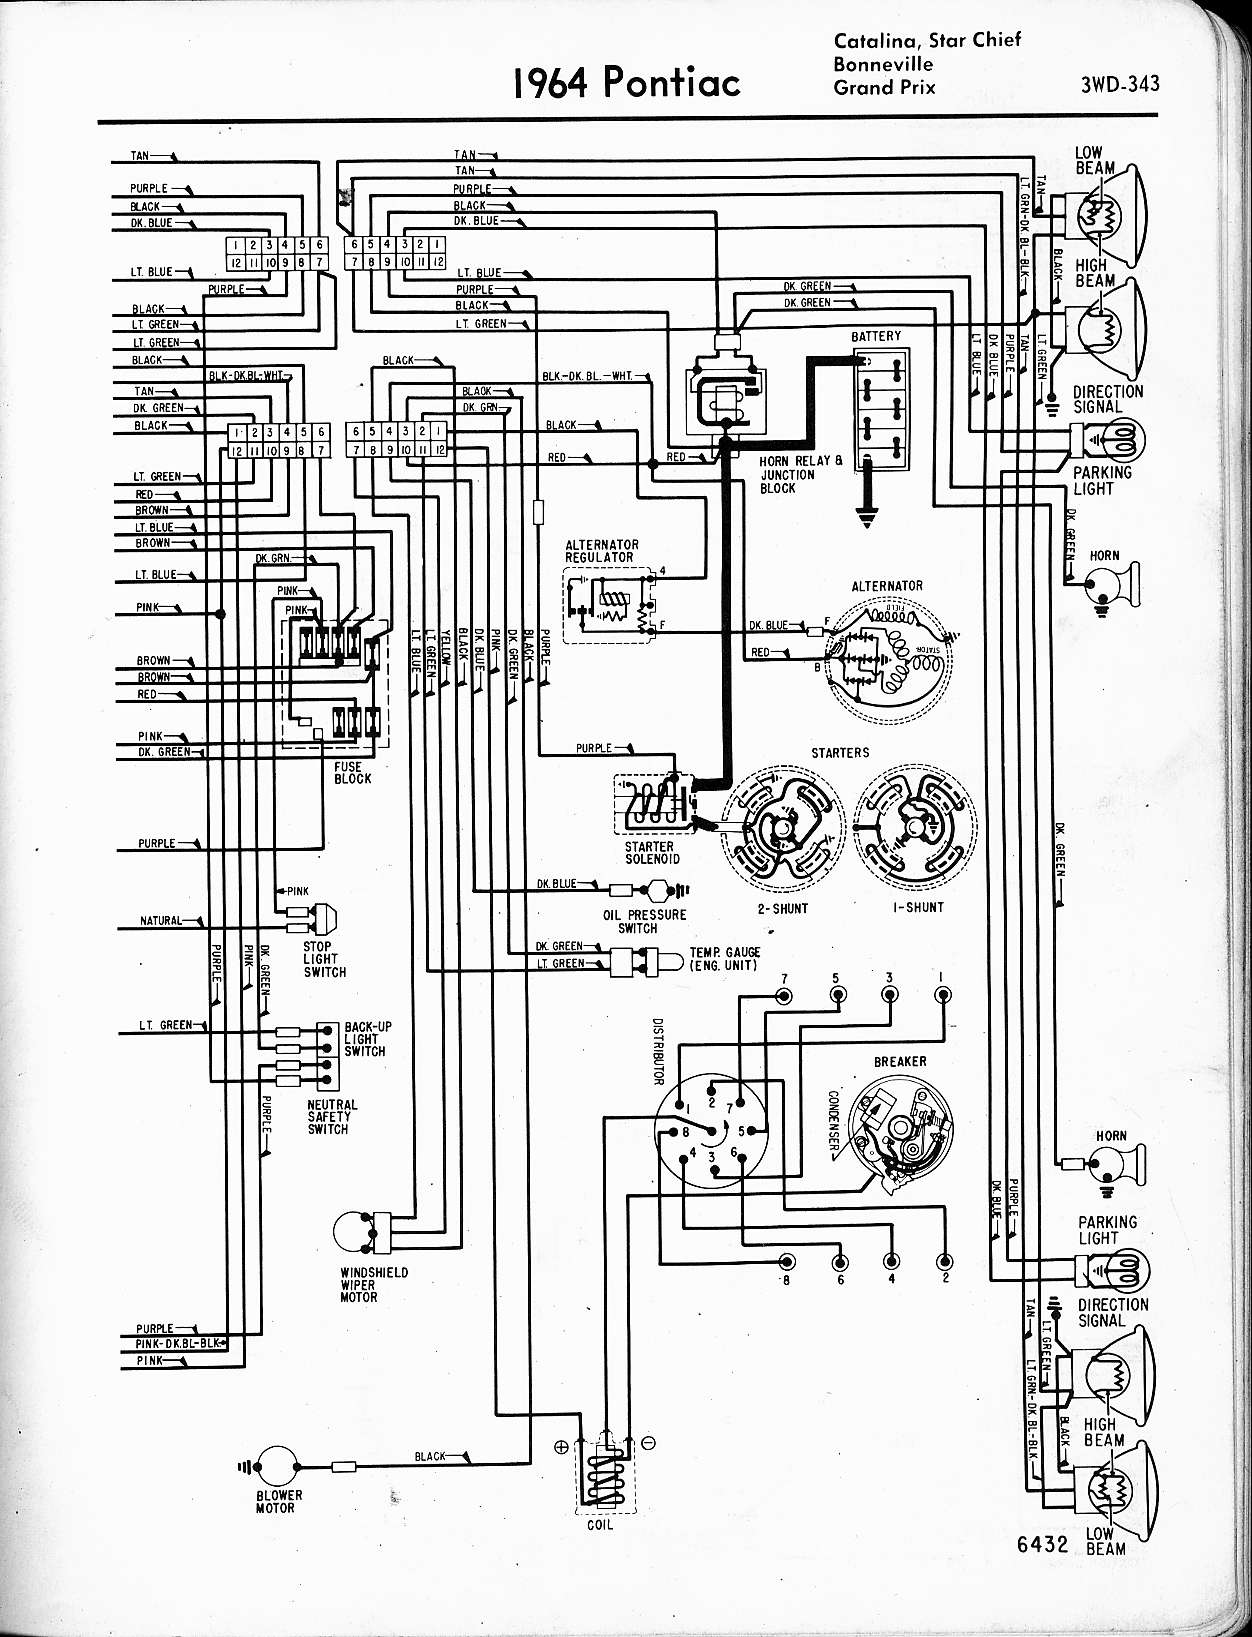 wallace racing wiring diagrams rh wallaceracing com 1964 GTO Engine Wiring-Diagram 1964 GTO Dash Wiring Diagram